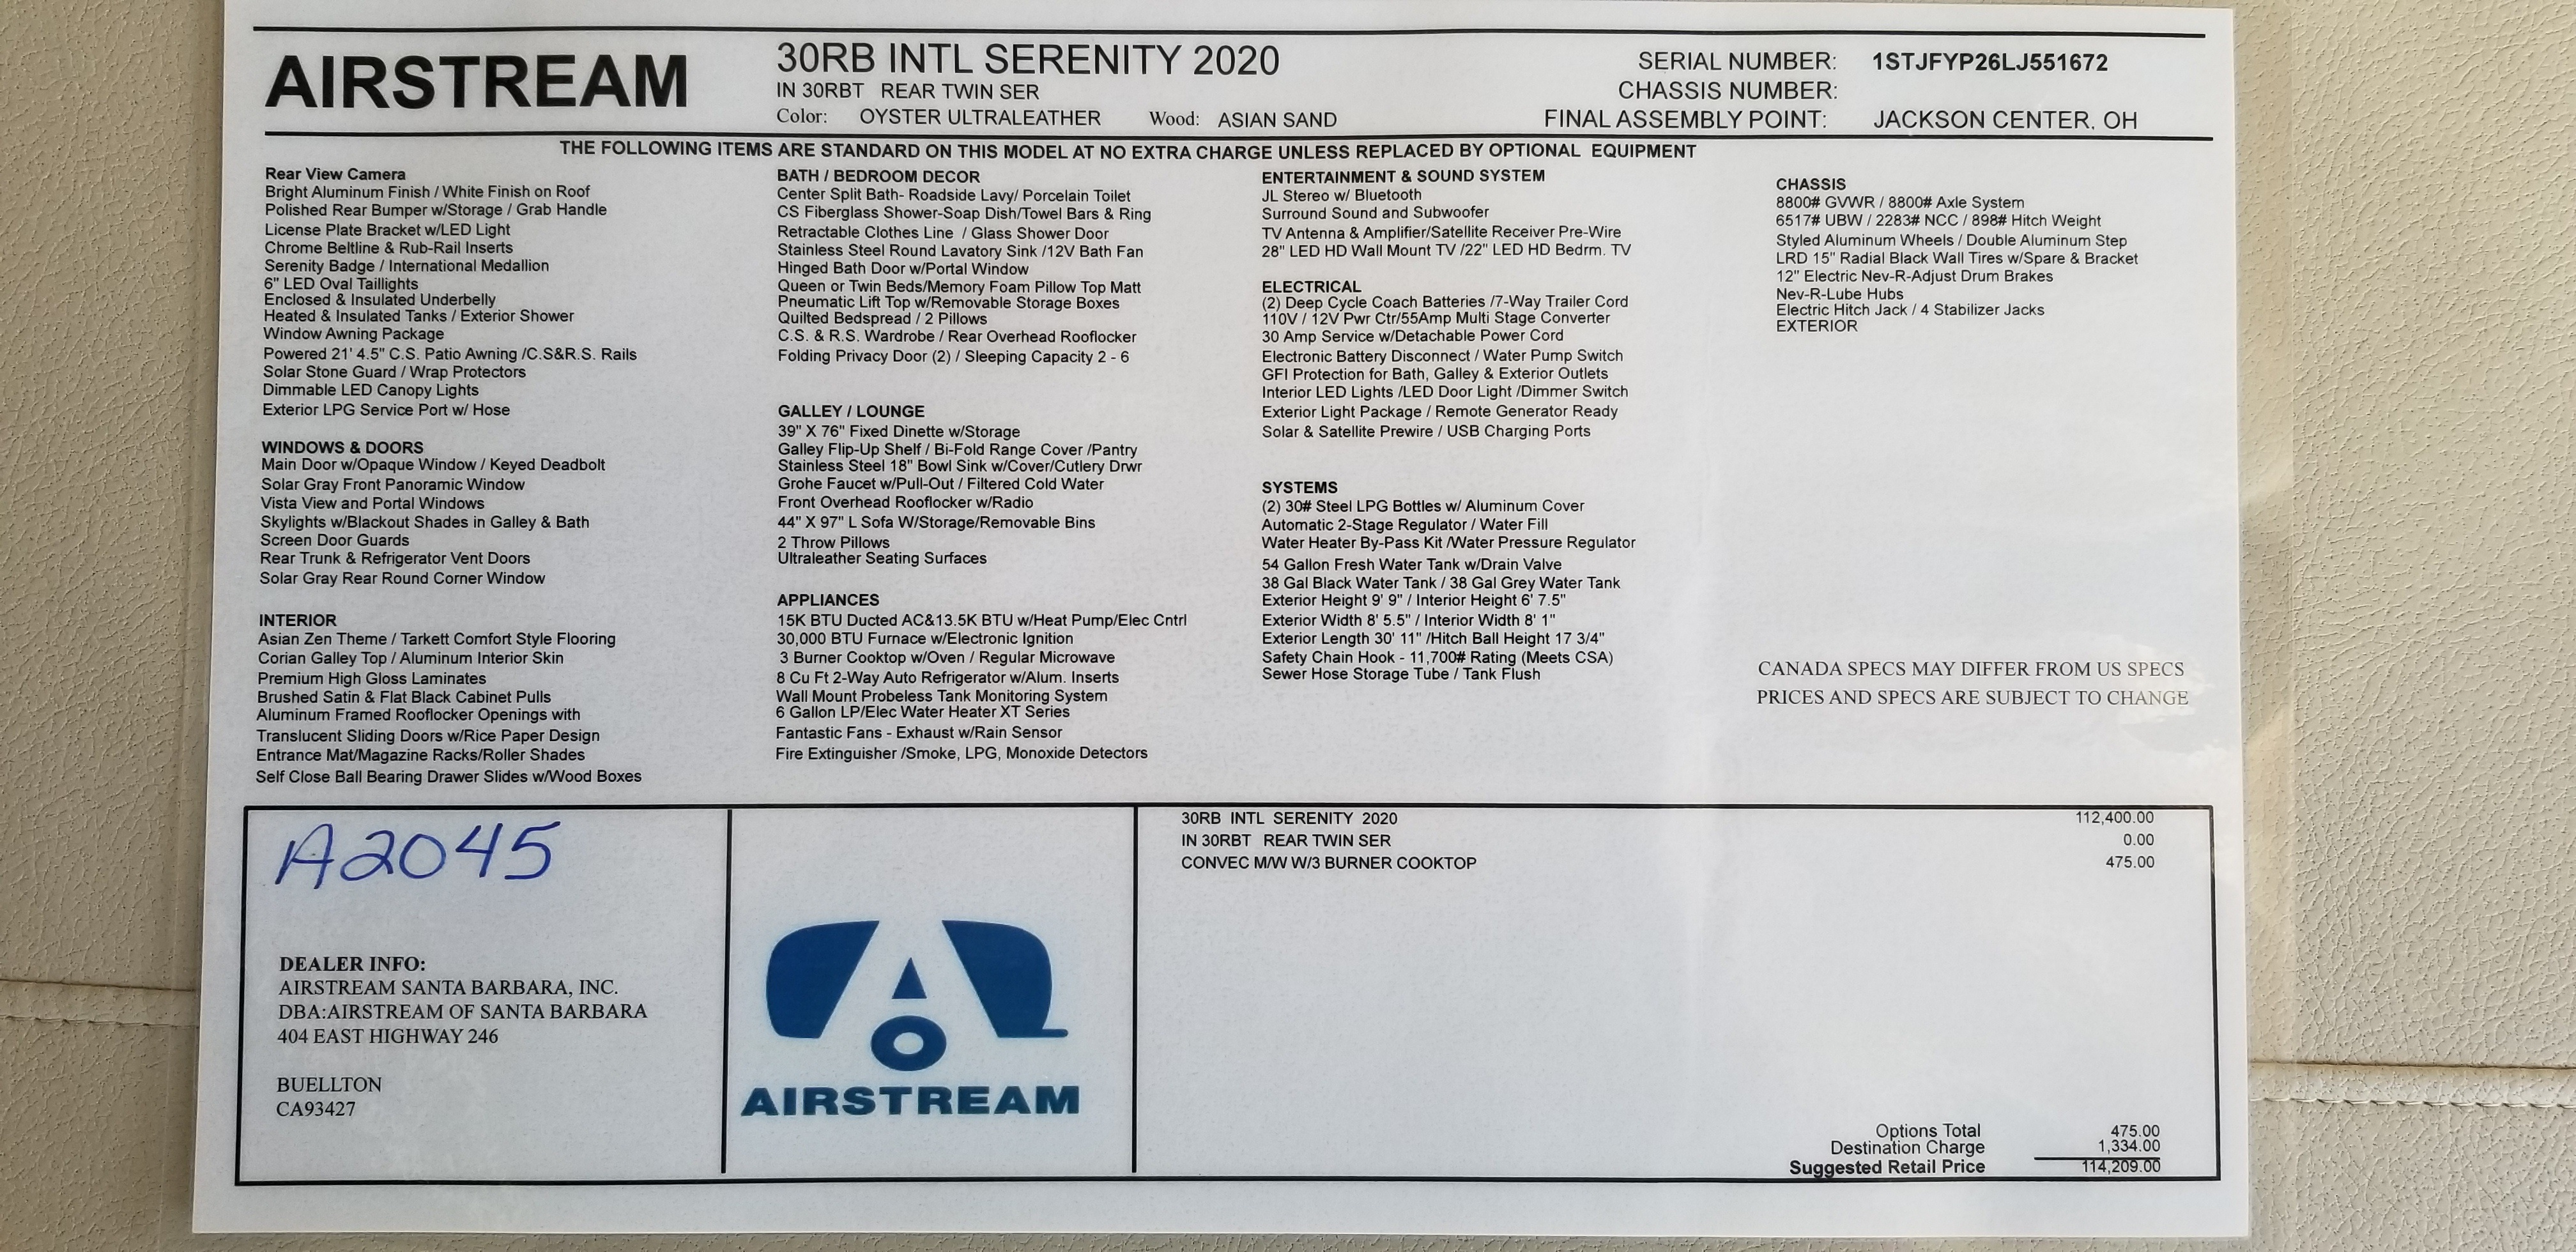 New 2020 Airstream International Serenity 30RBT